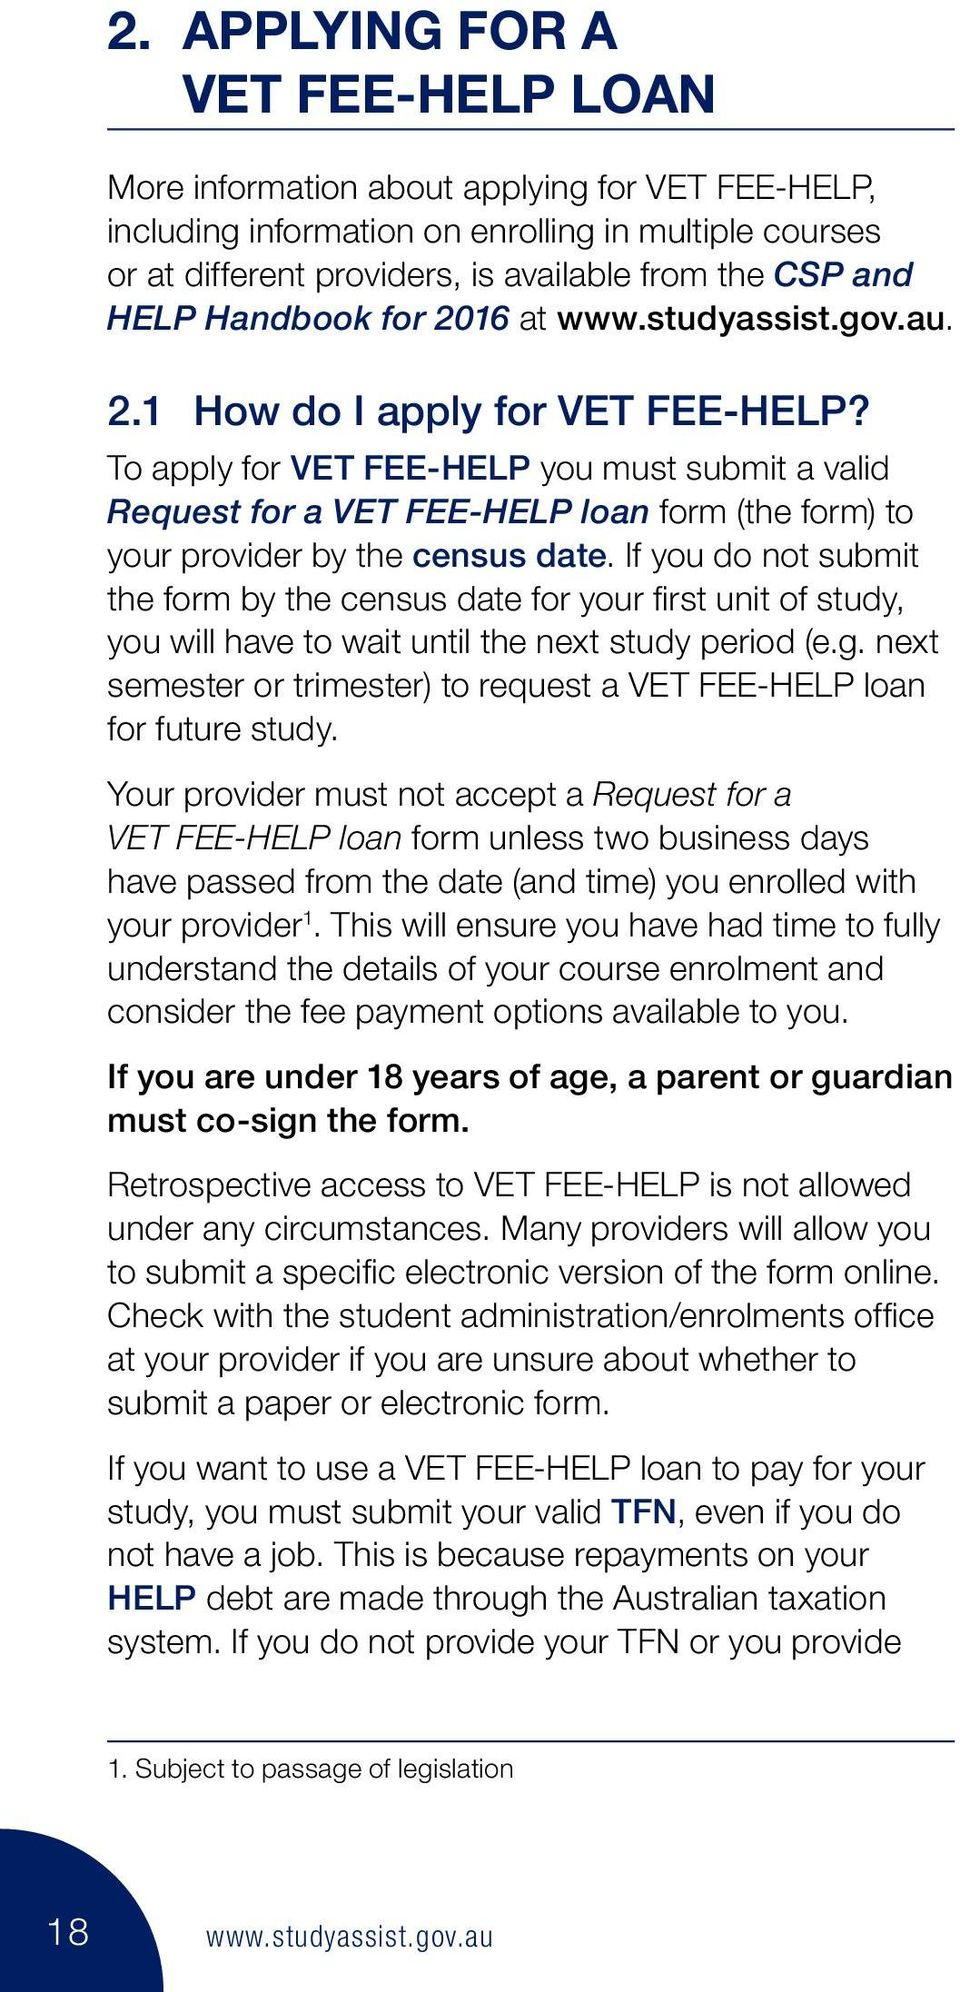 To apply for VET FEE-HELP you must submit a valid Request for a VET FEE-HELP loan form (the form) to your provider by the census date.